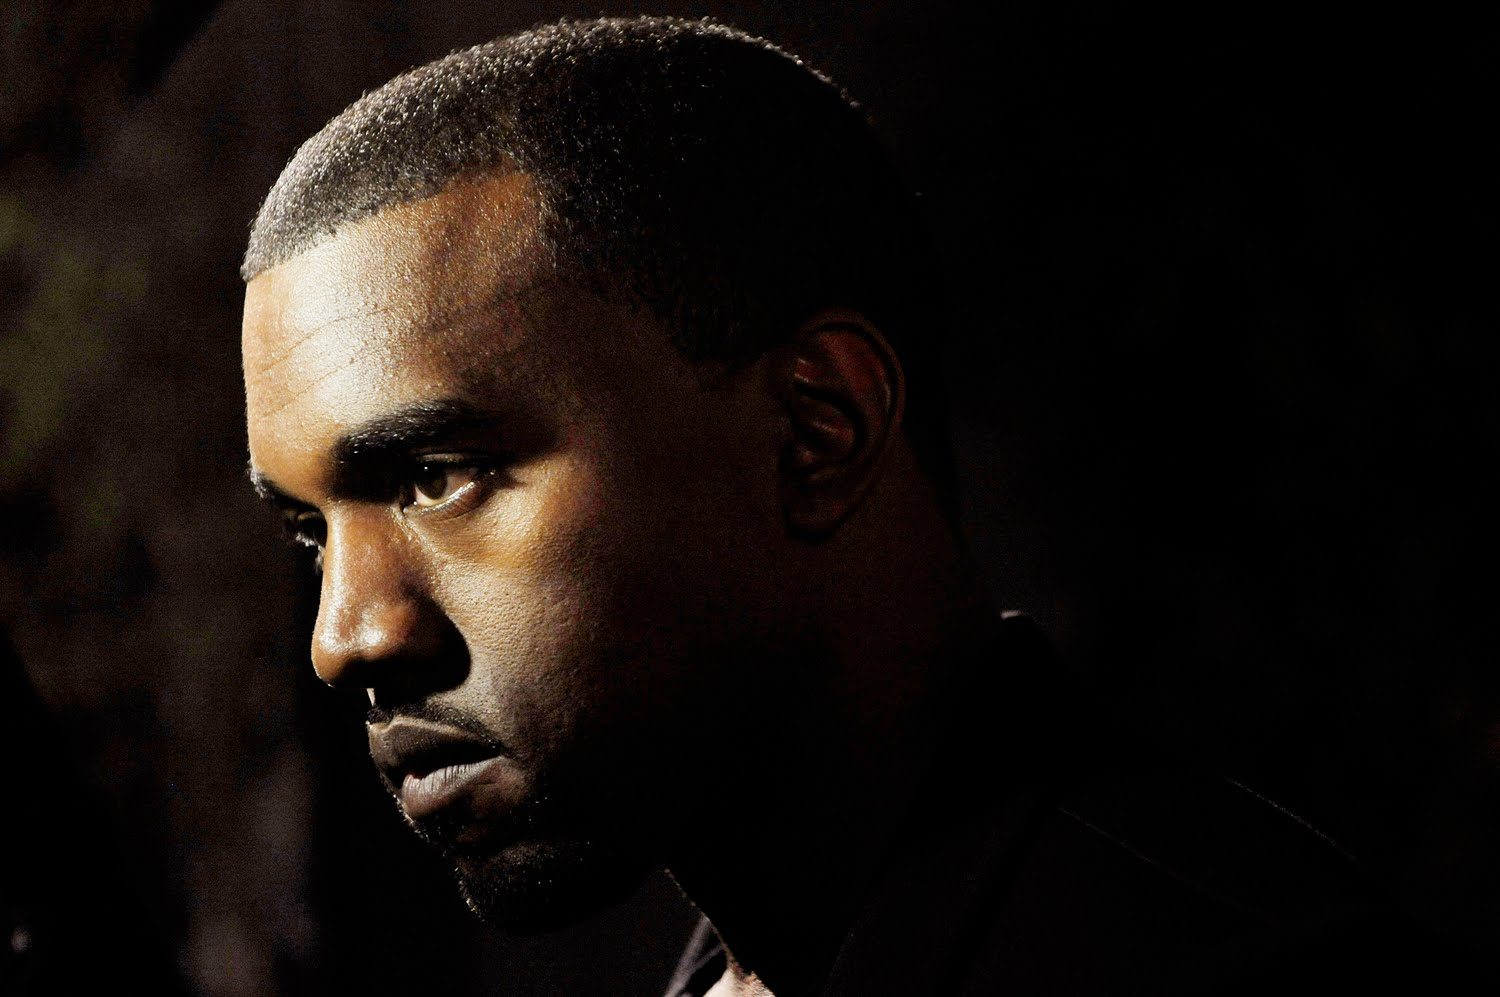 THE RAYDIO TWINs KANYE WEST DIDNT WANT TO SPEAK ON 106 & PARK